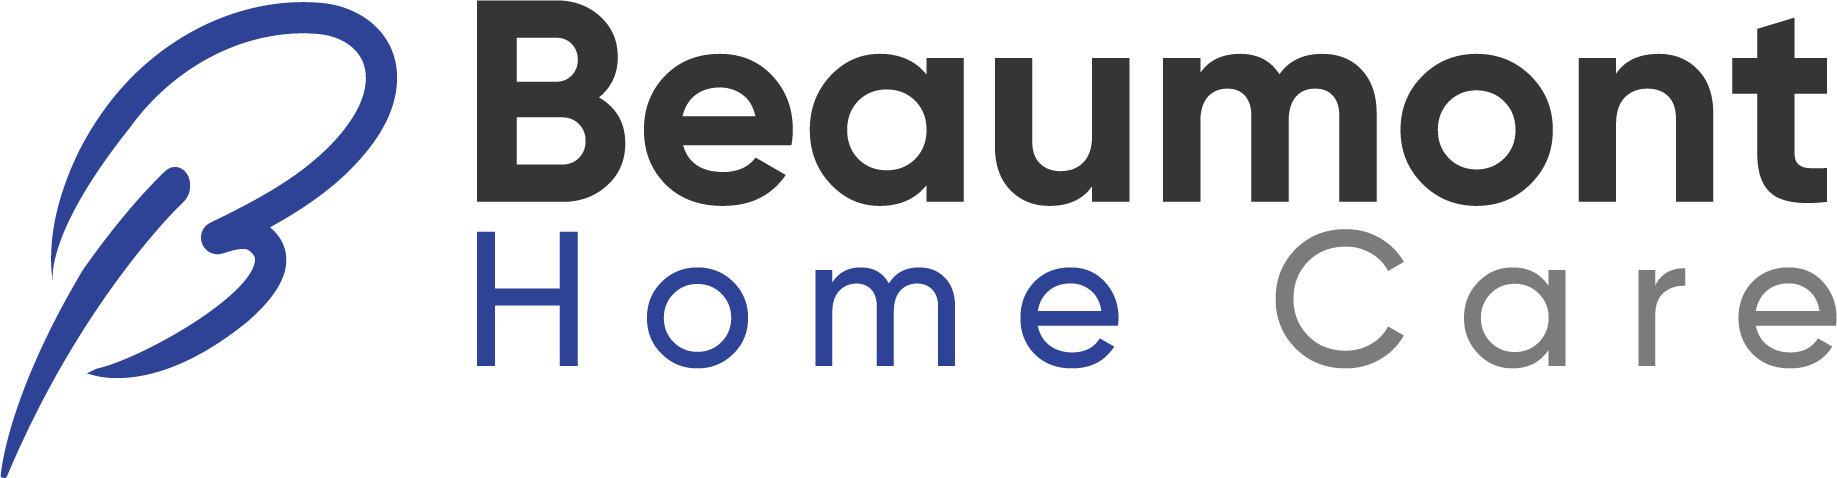 Beaumont Home Care